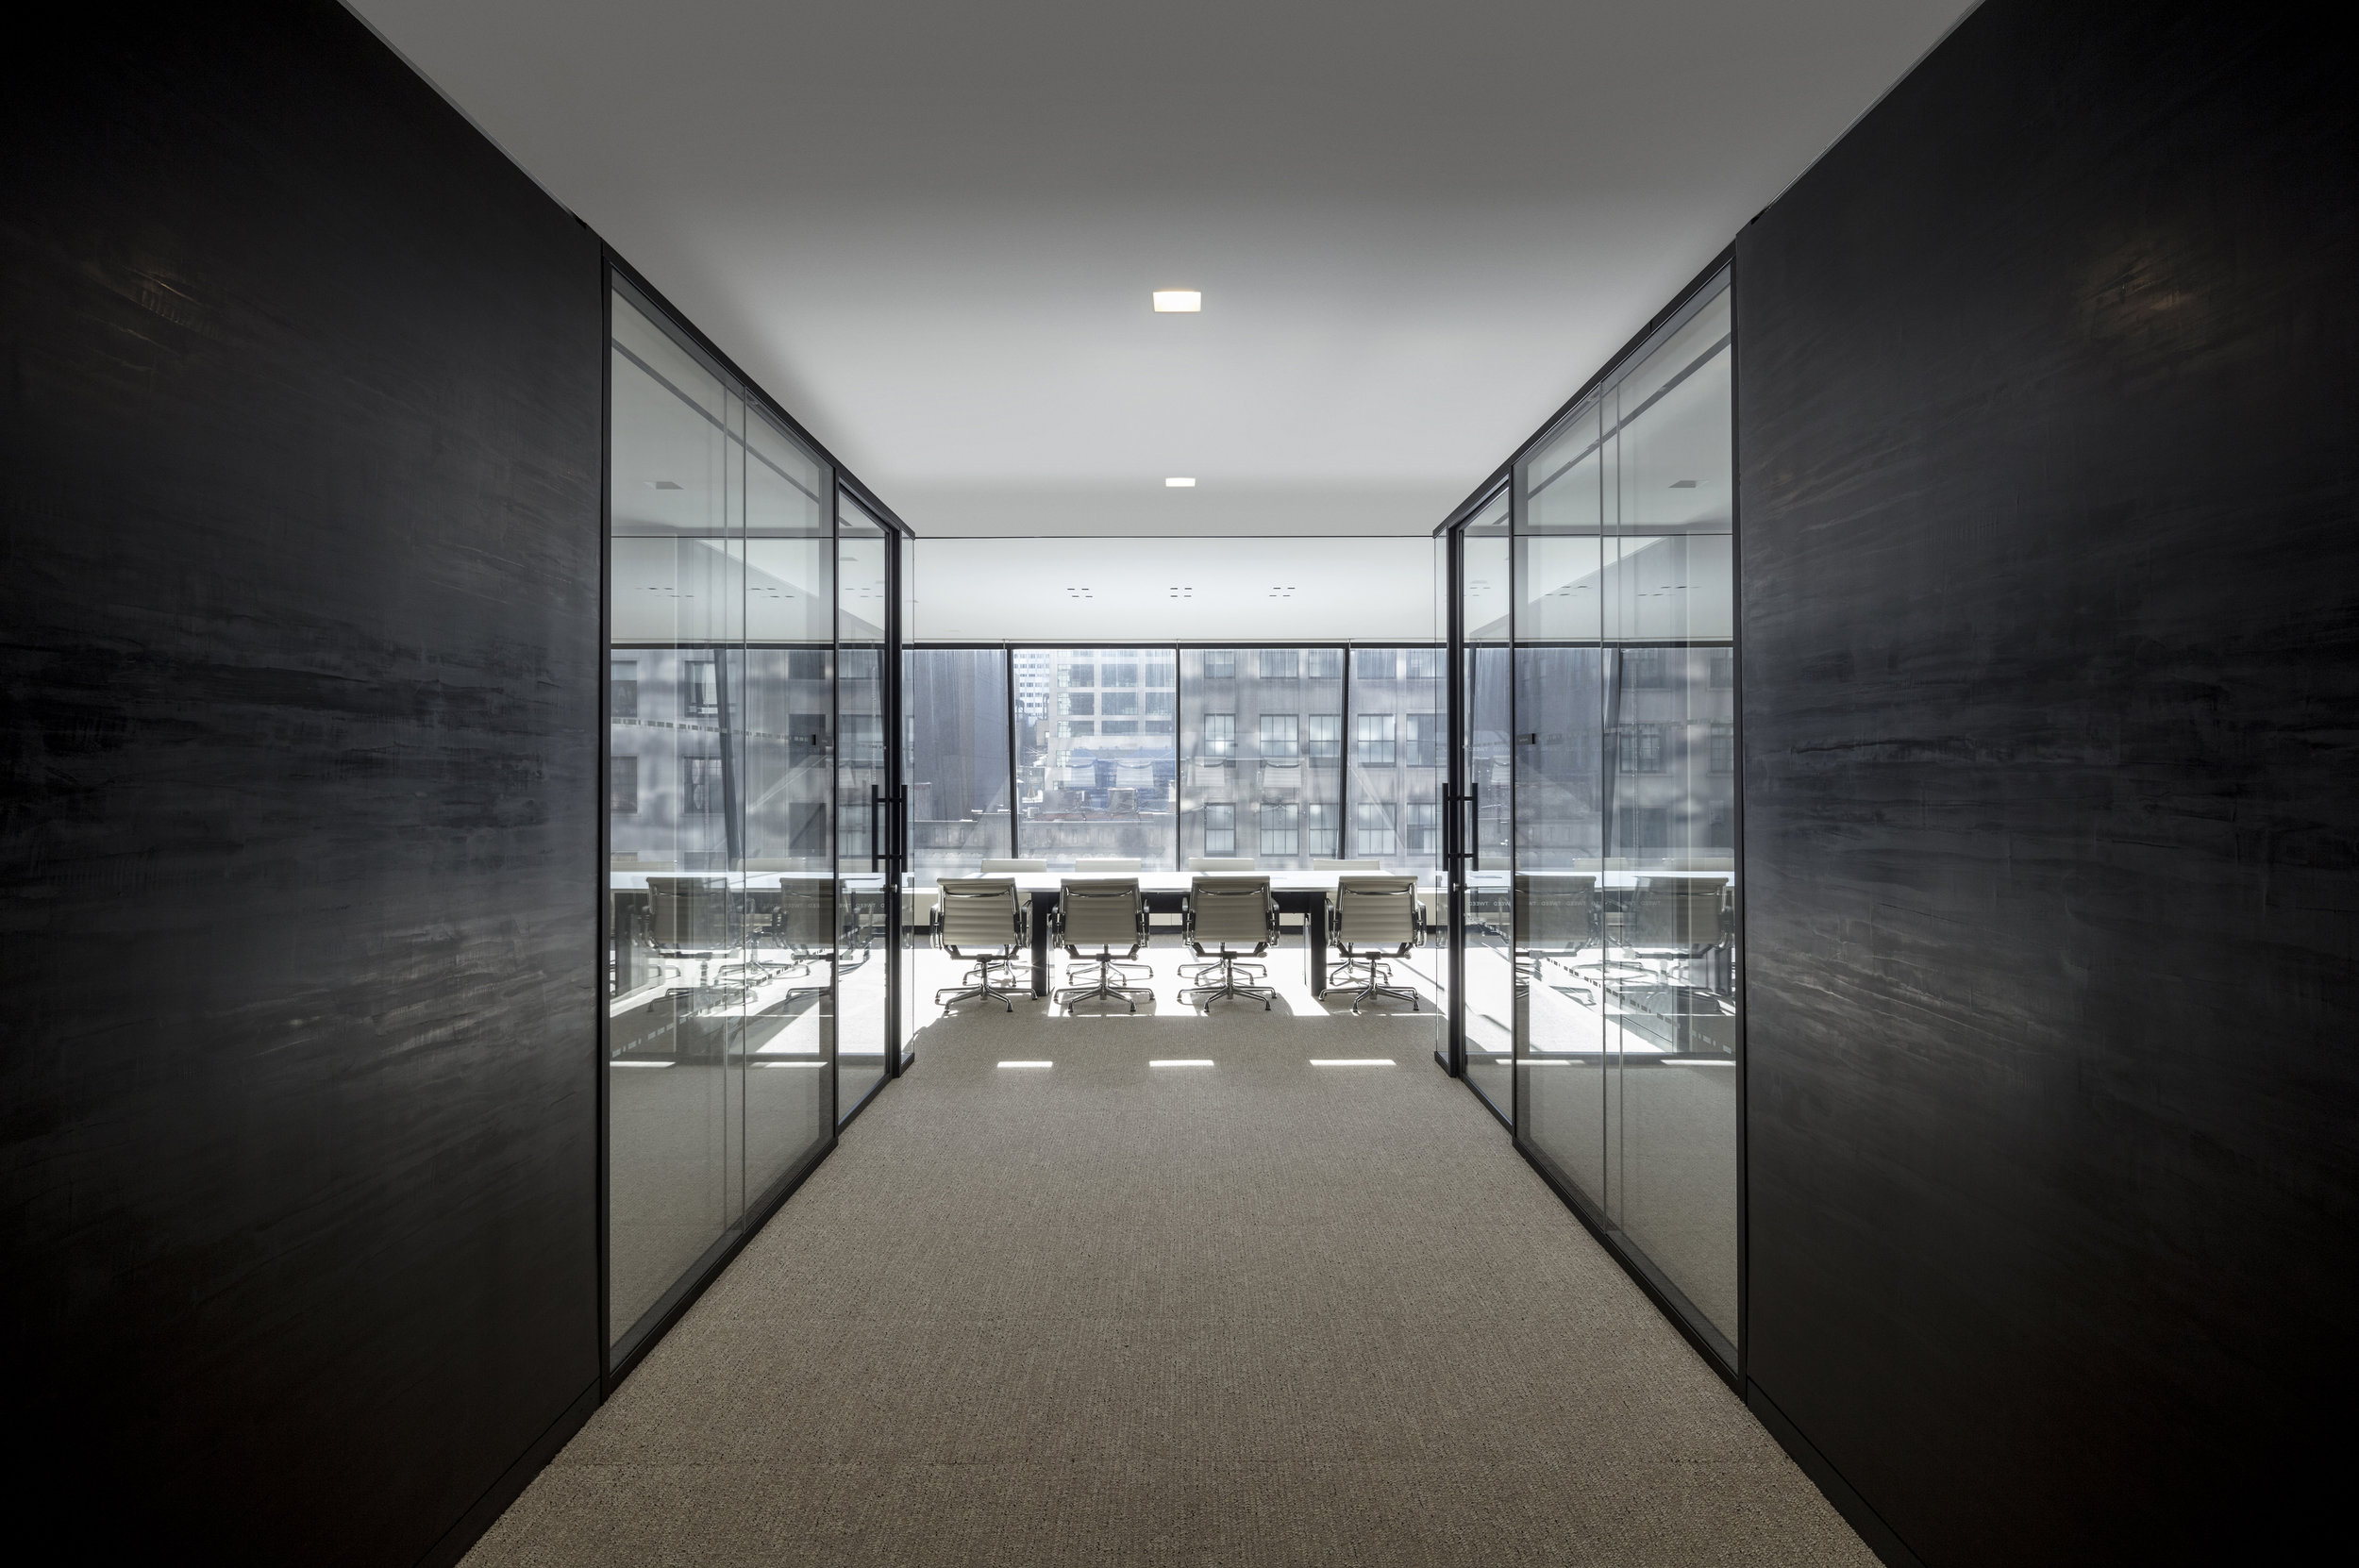 07_LT meeting room.jpg